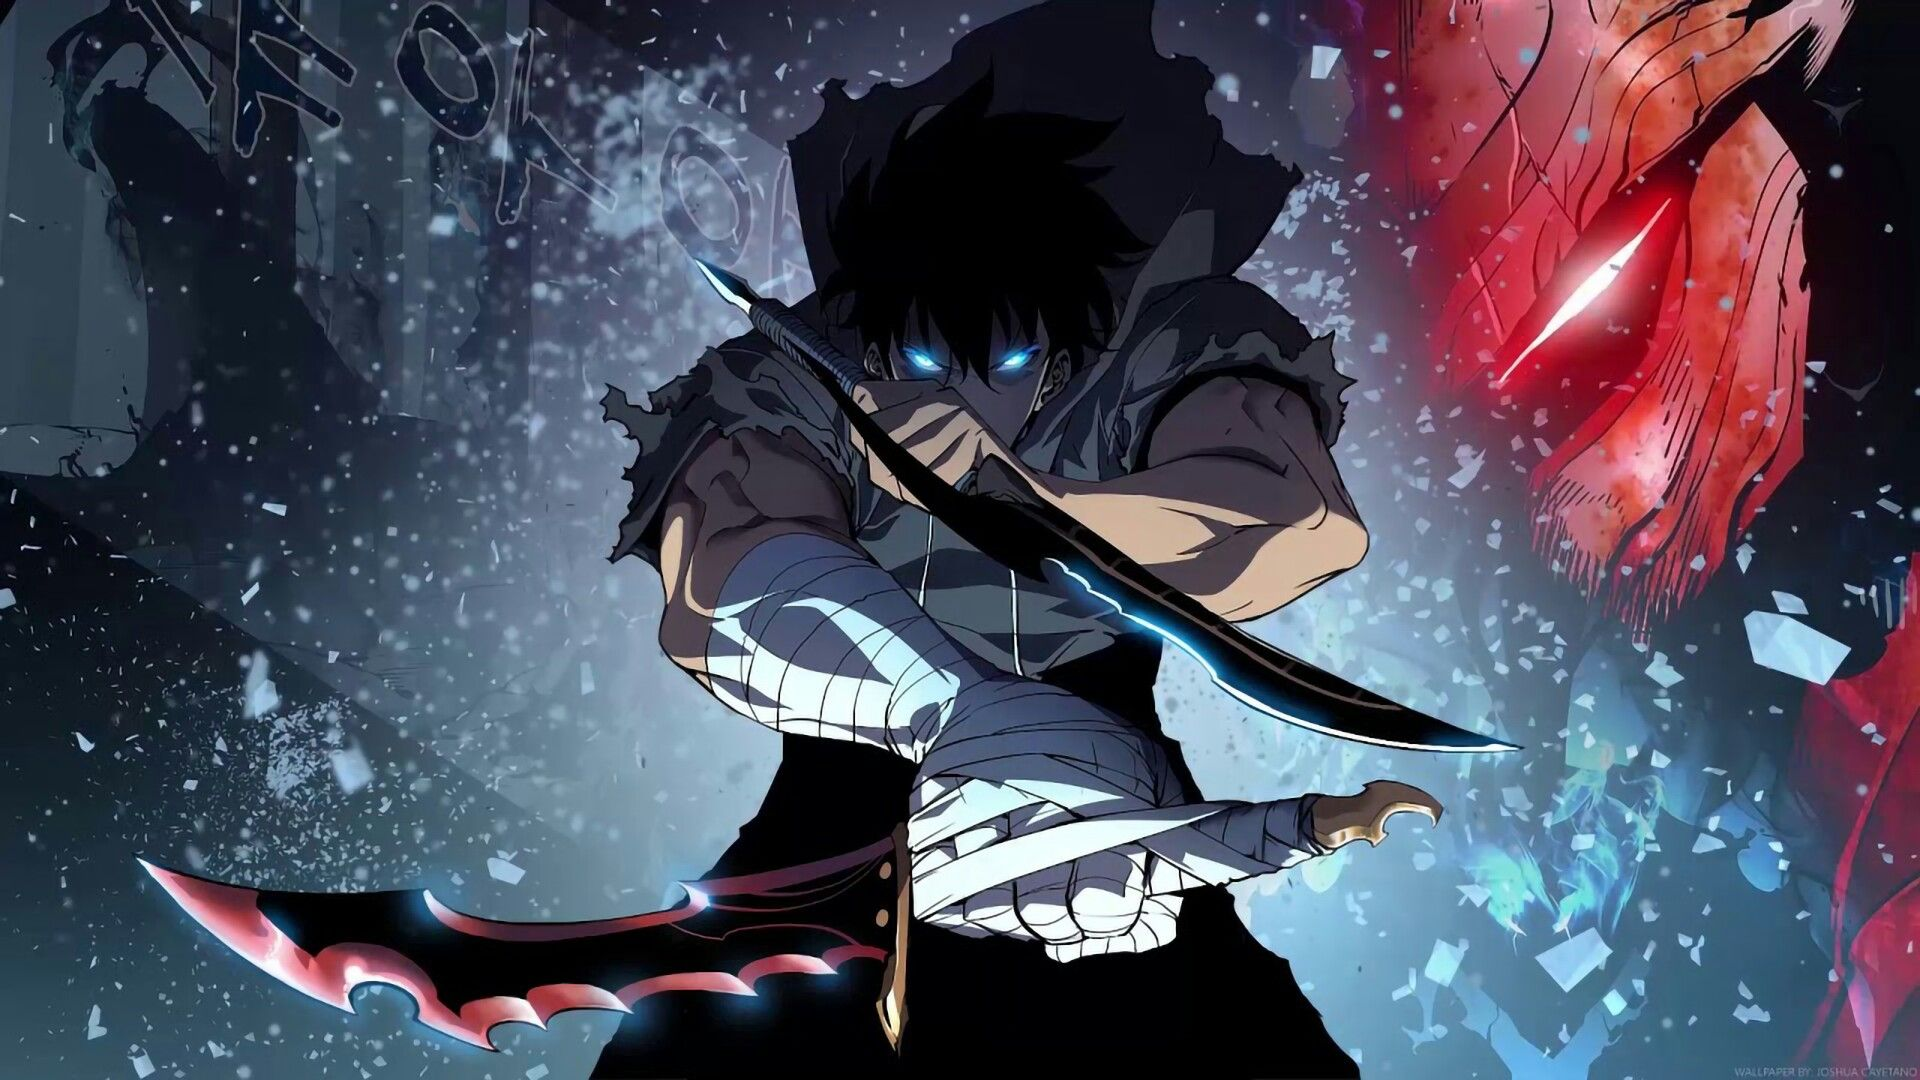 Solo Leveling Anime Wallpaper Cool Anime Wallpapers Hd Anime Wallpapers